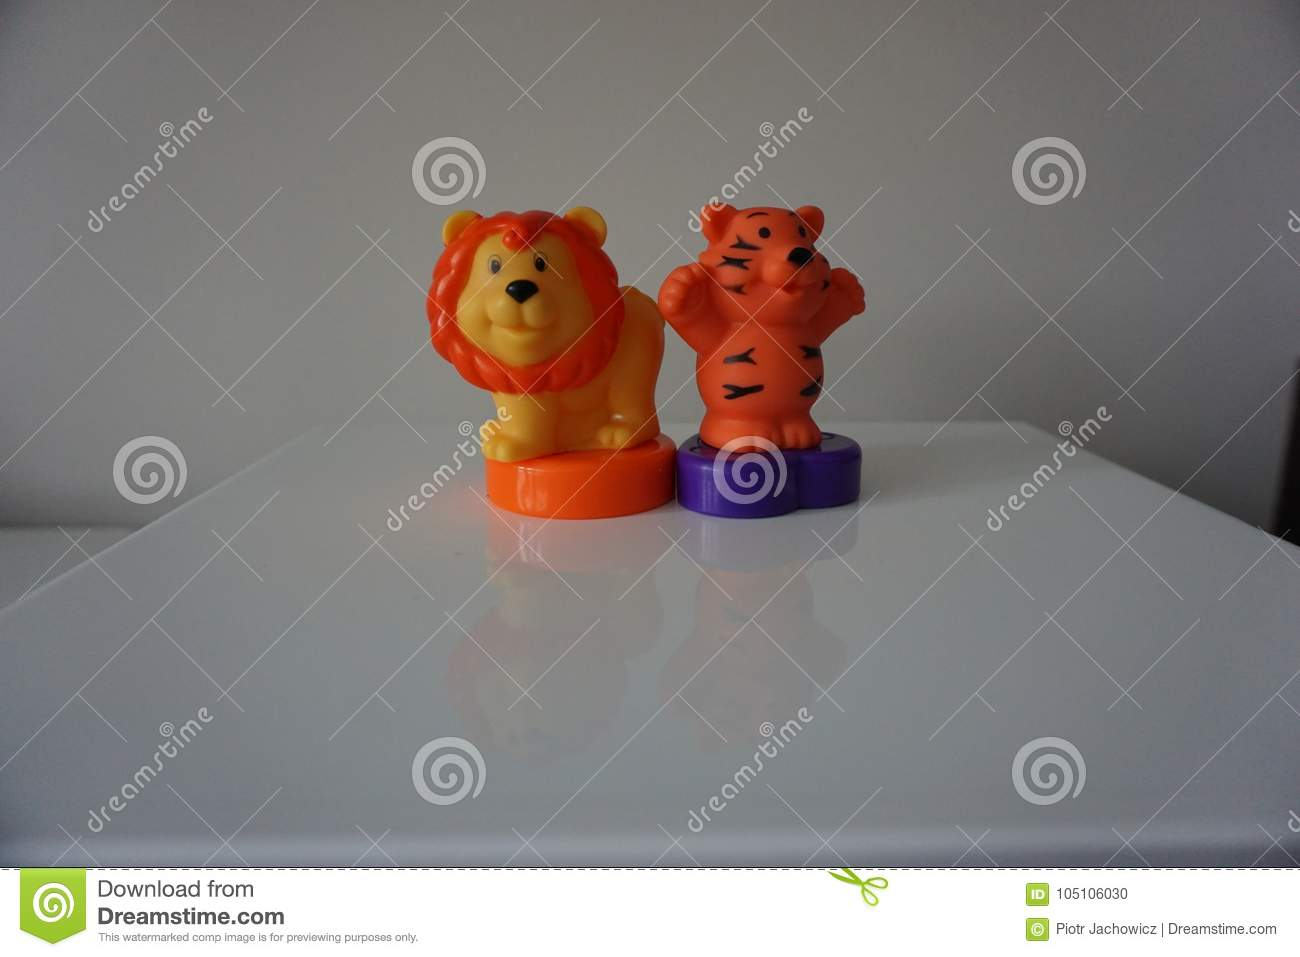 Lion and tiger plastic toys for child